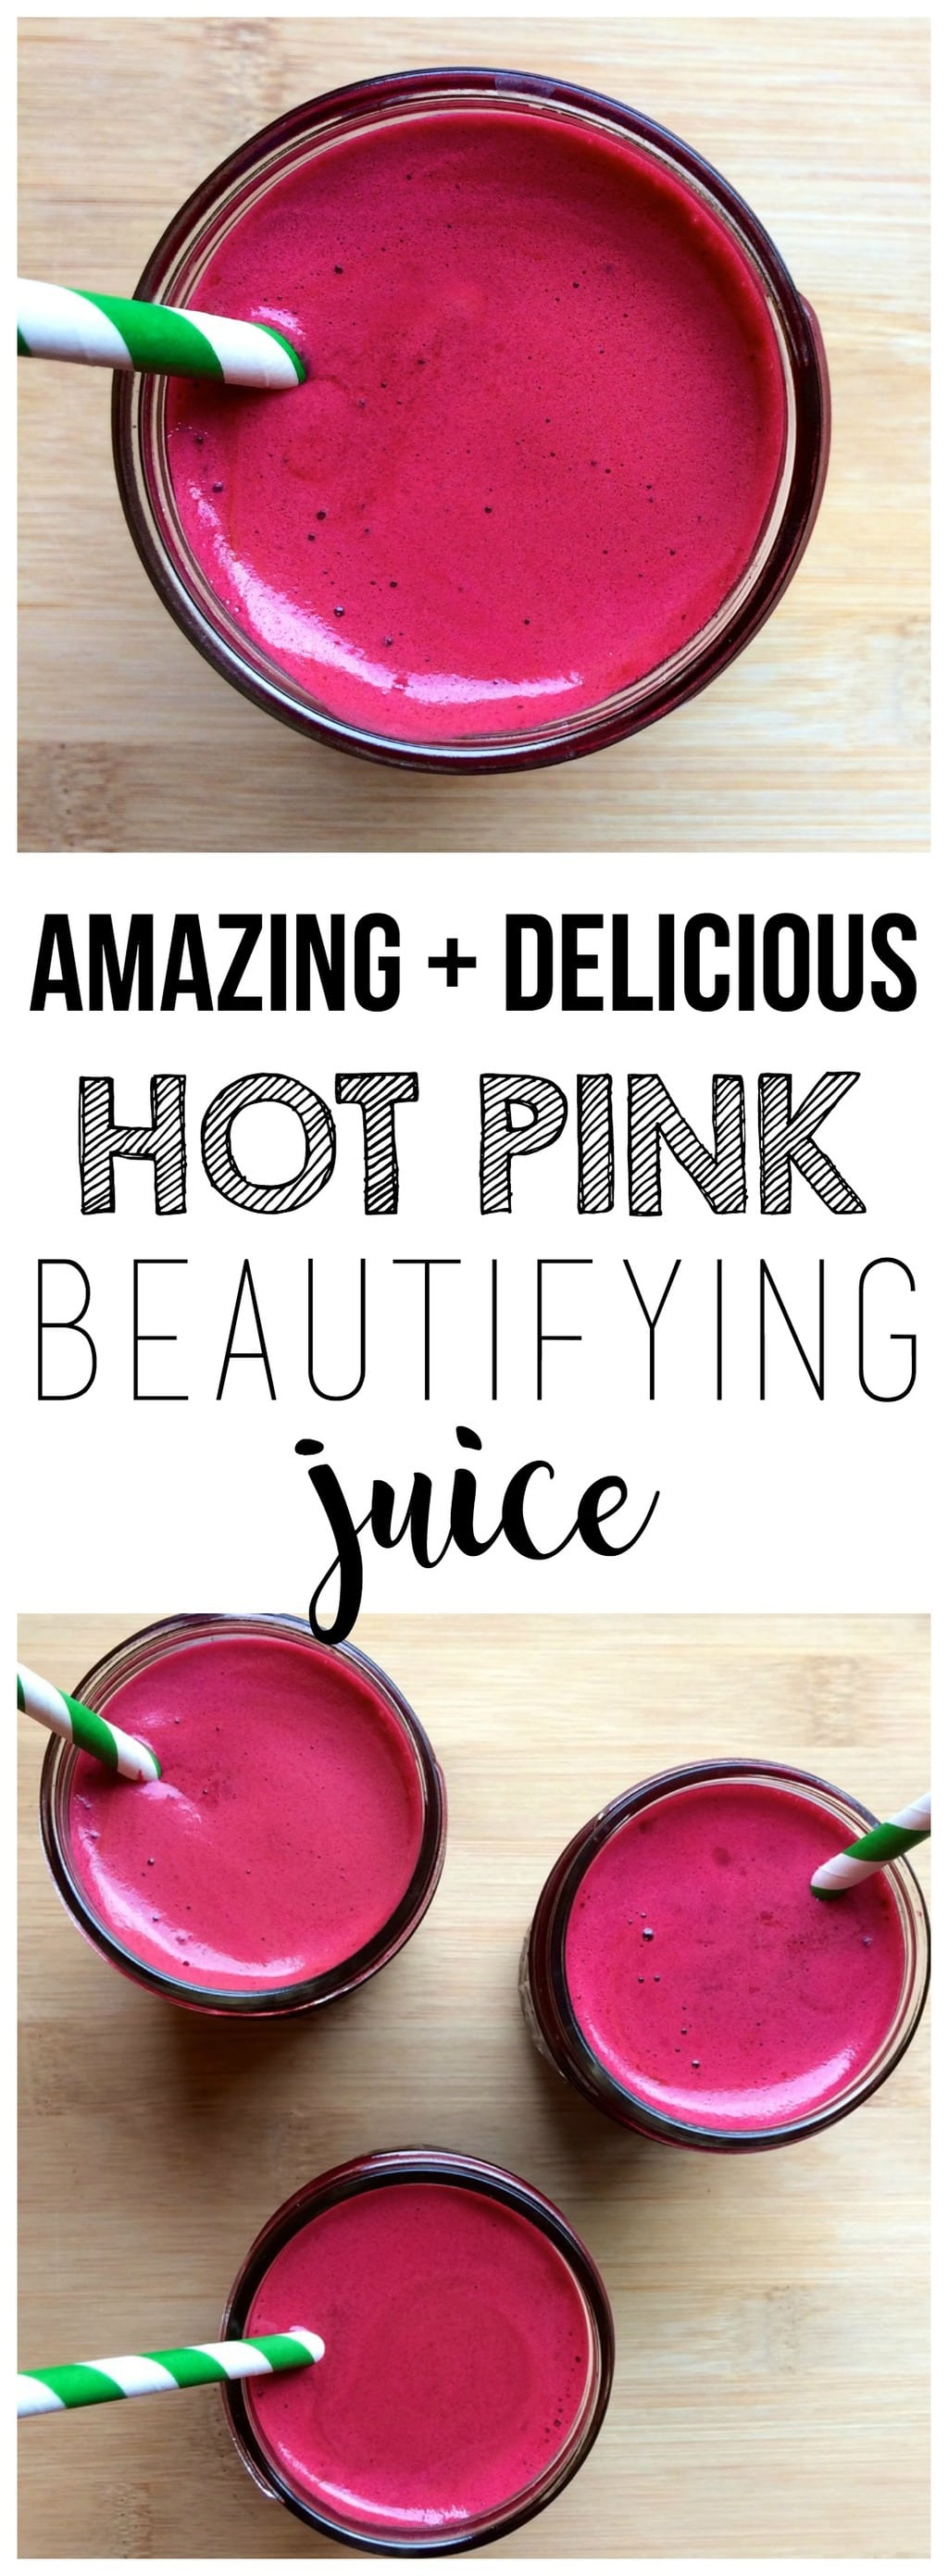 This Hot Pink Beautifying Juice will make you feel and look AMAZING! Loaded with TONS of vitamins, minerals, and antioxidants. You'll be glowing from the inside out!